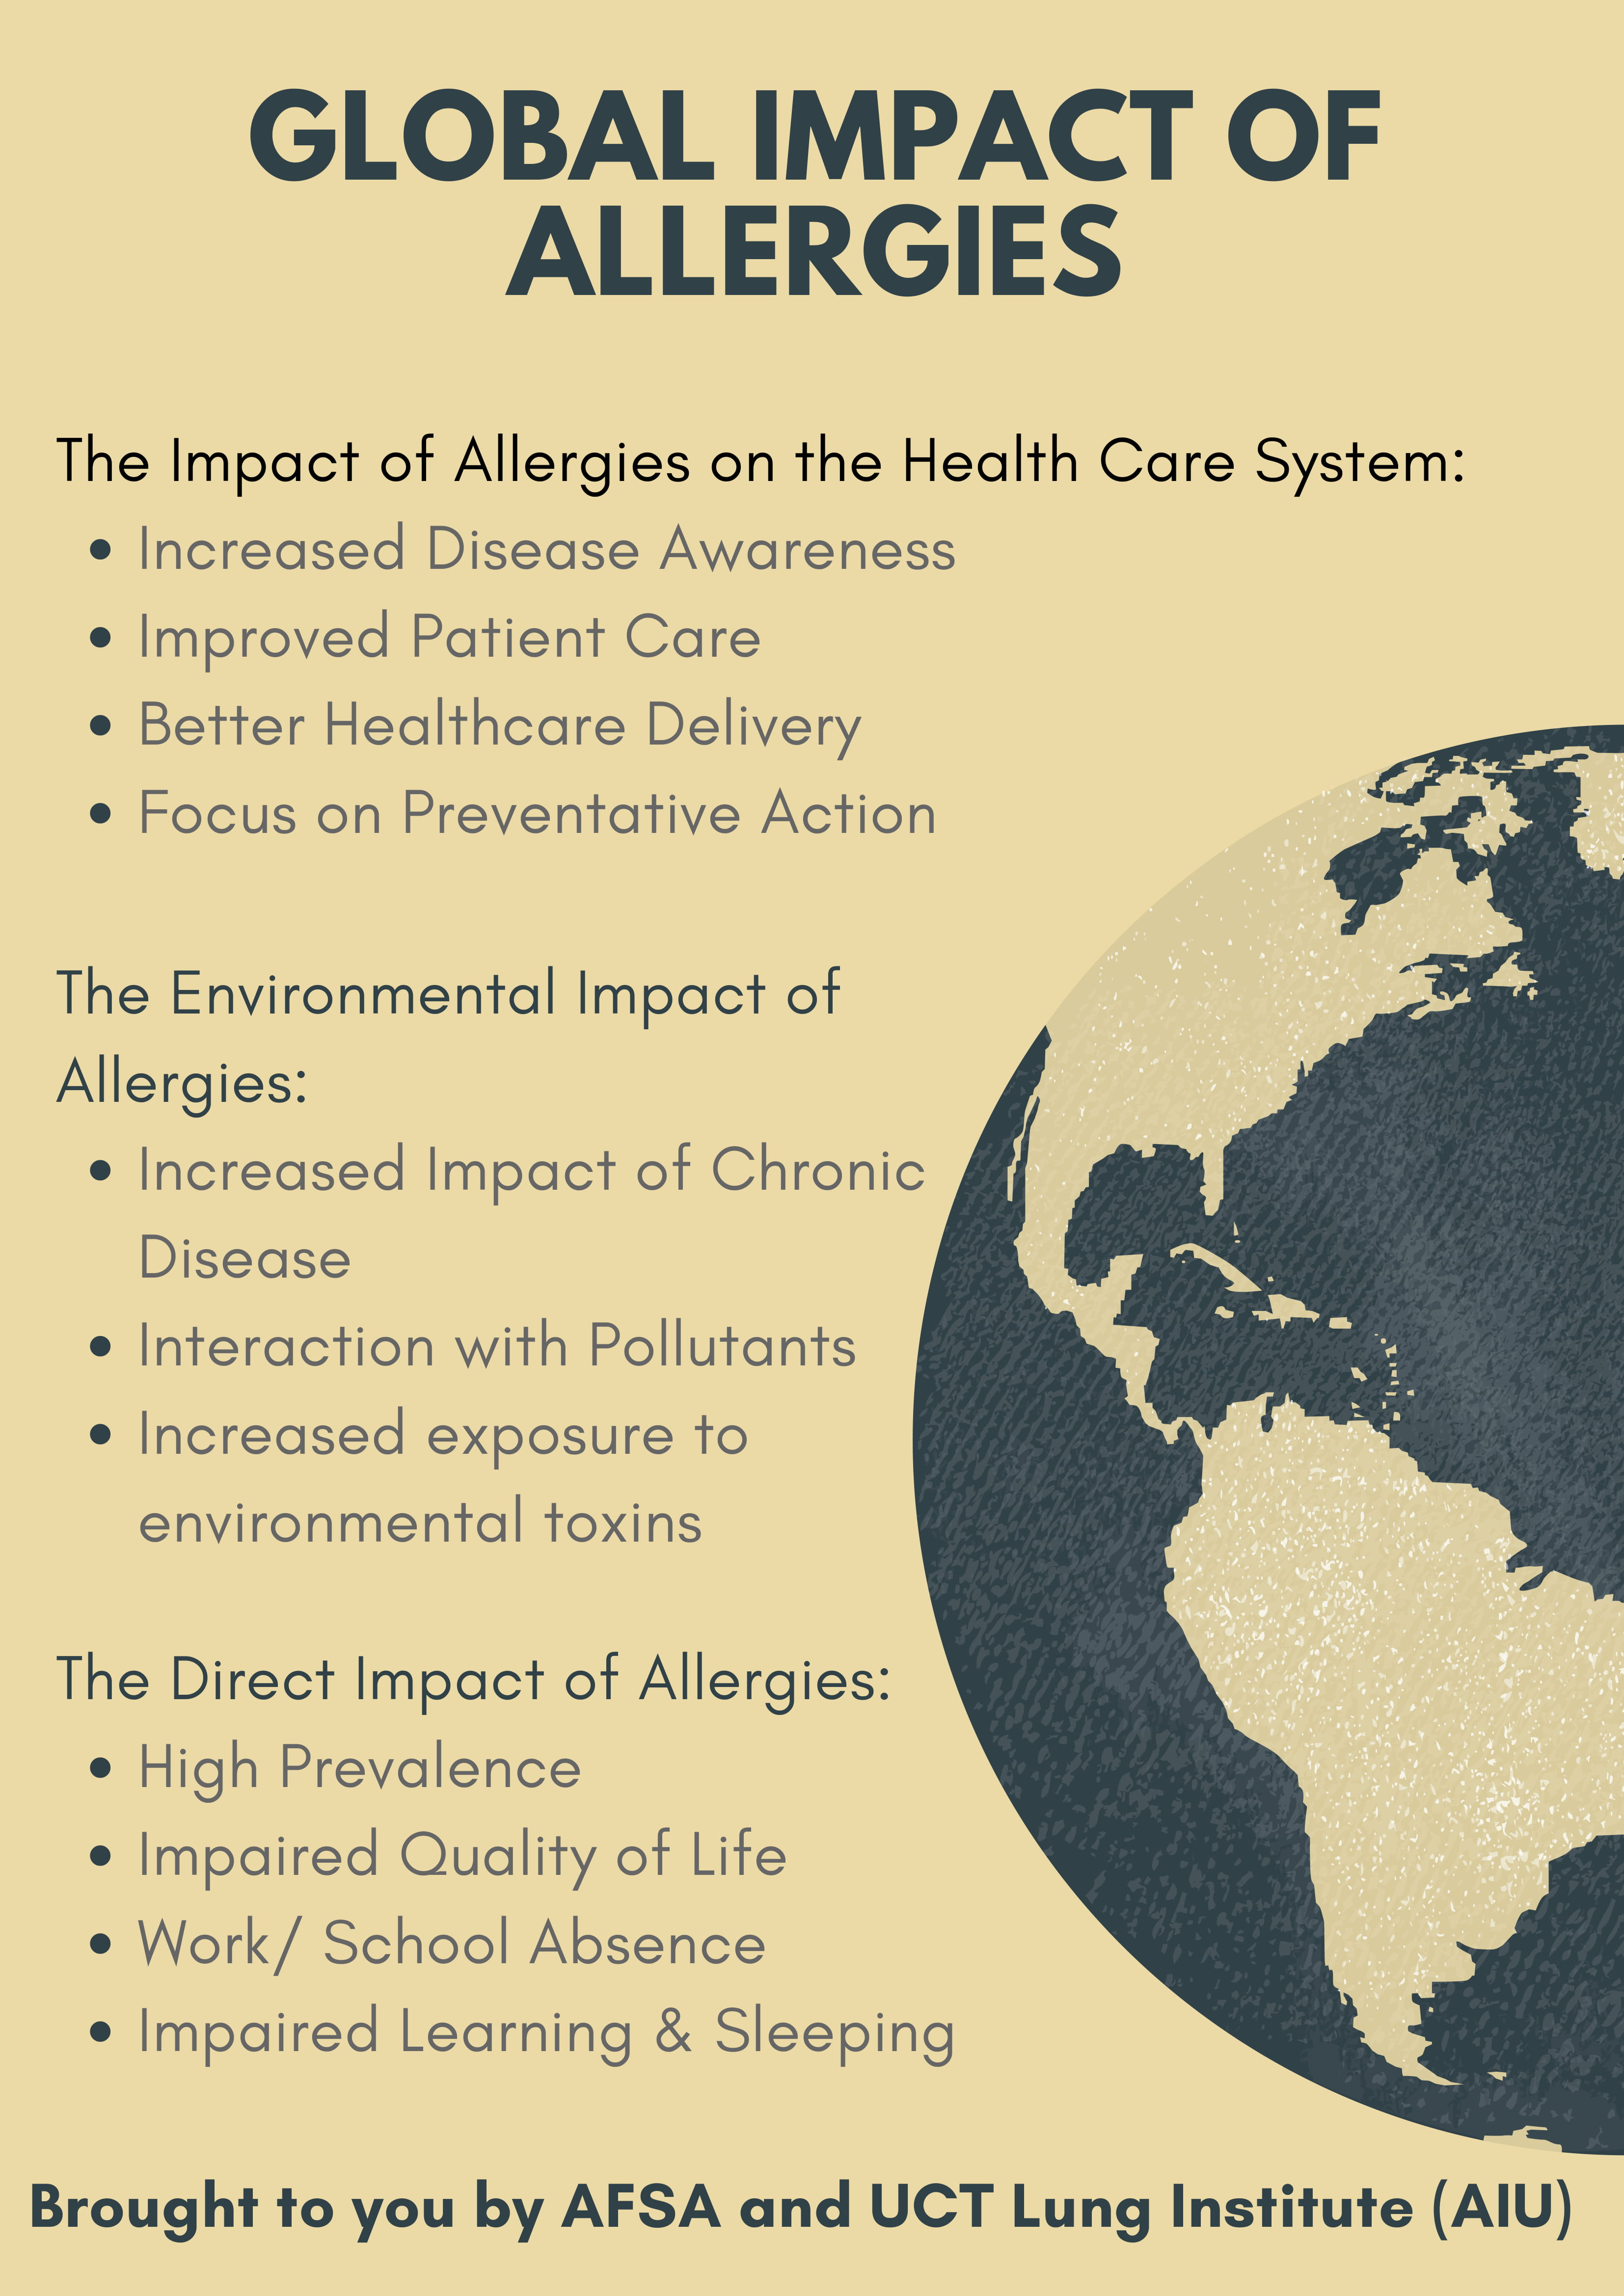 AFSA Infographic - Global Impact of Allergies-1